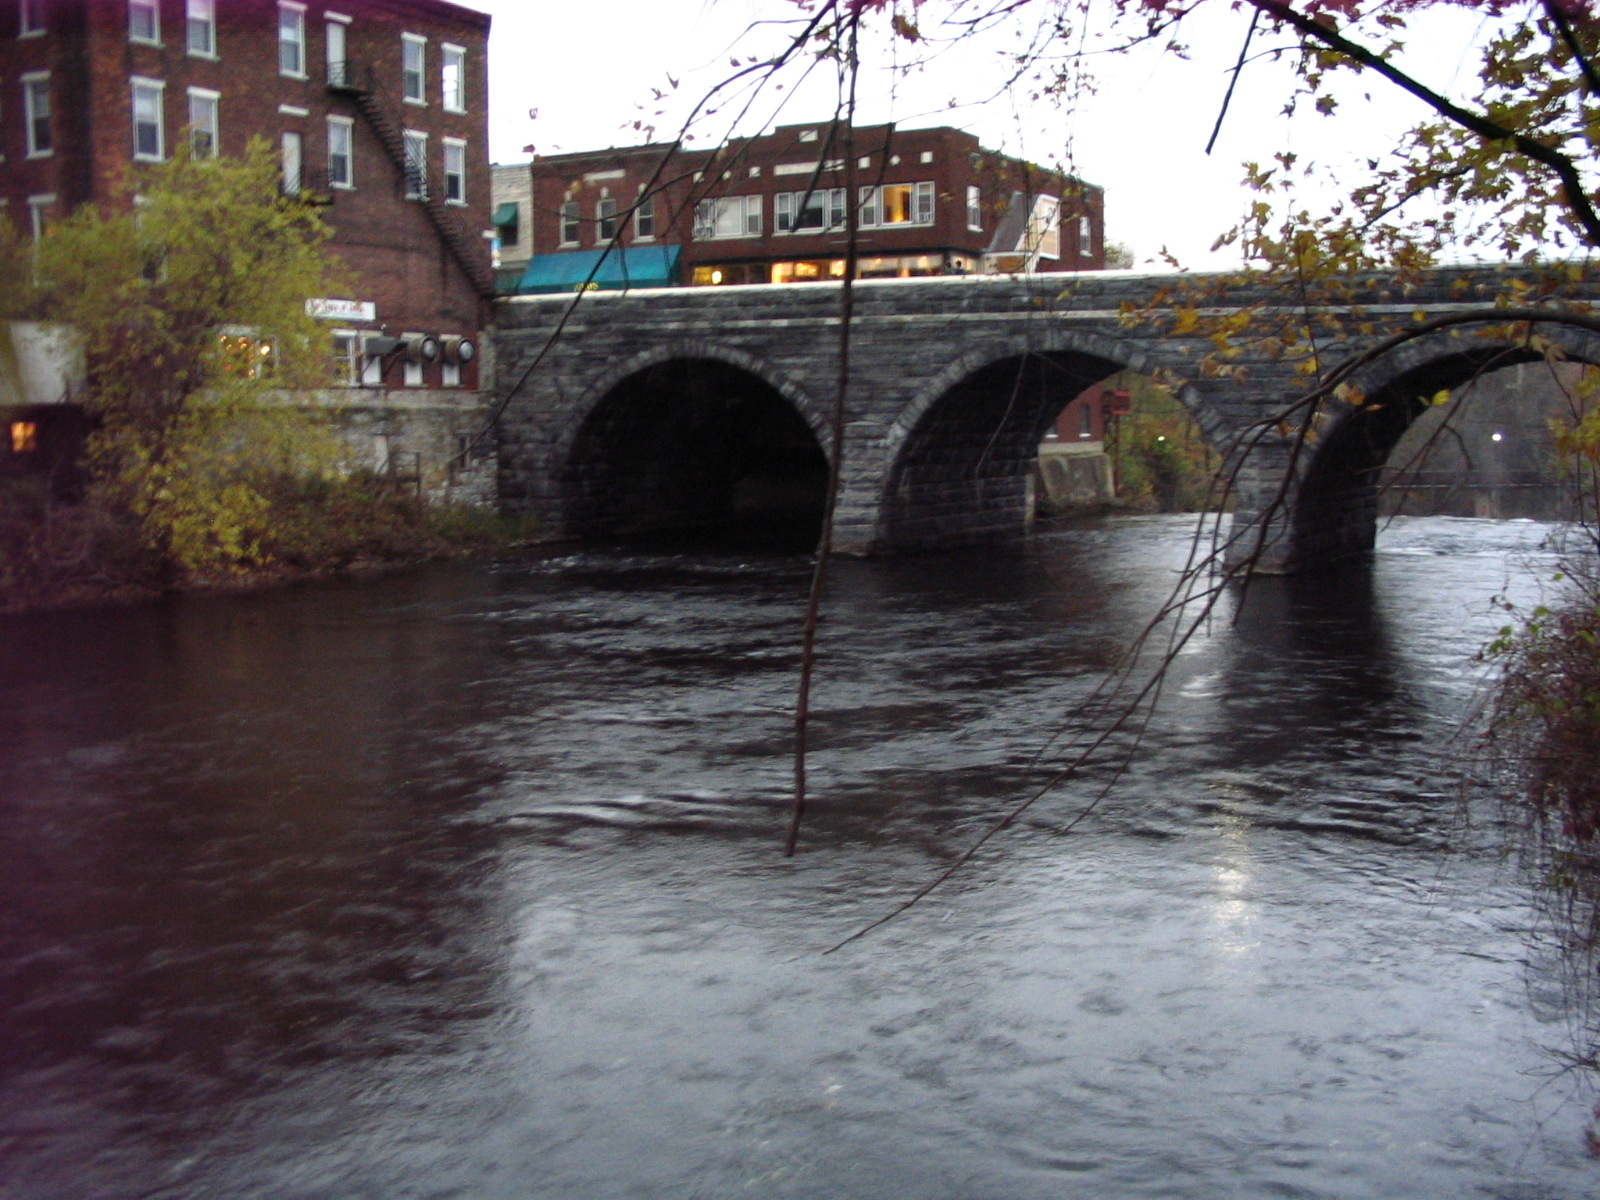 Photograph of the Otter Creek at Middlebury, VT (MDBV1) looking downstream